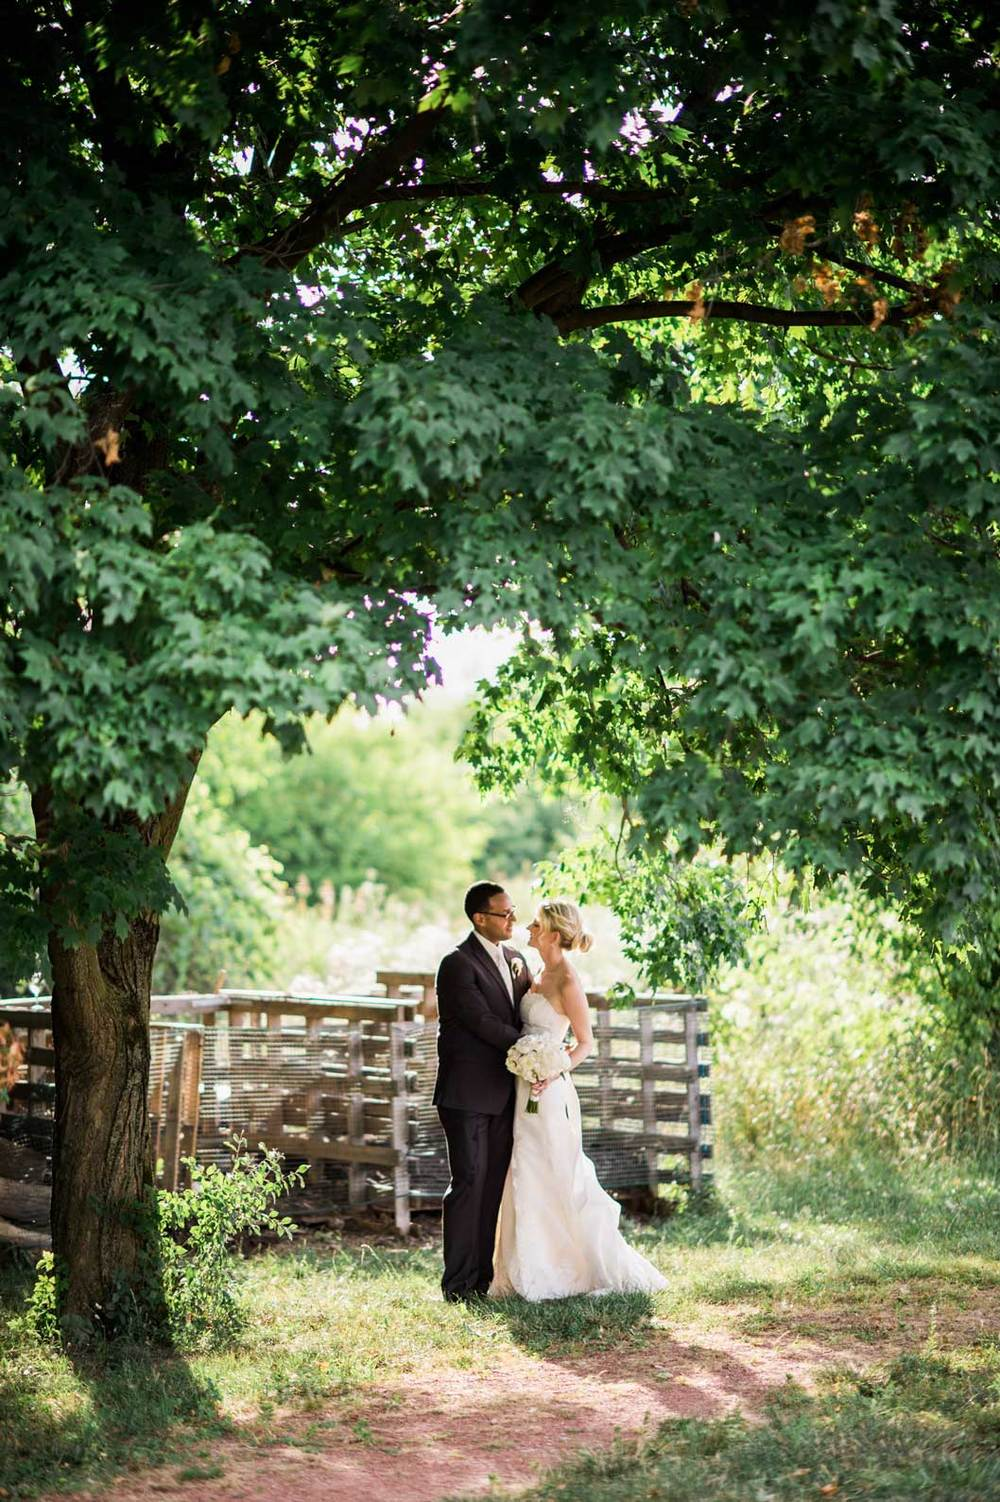 Bride and groom's sunset wedding photography at the Grange Audubon Center in Columbus, OH